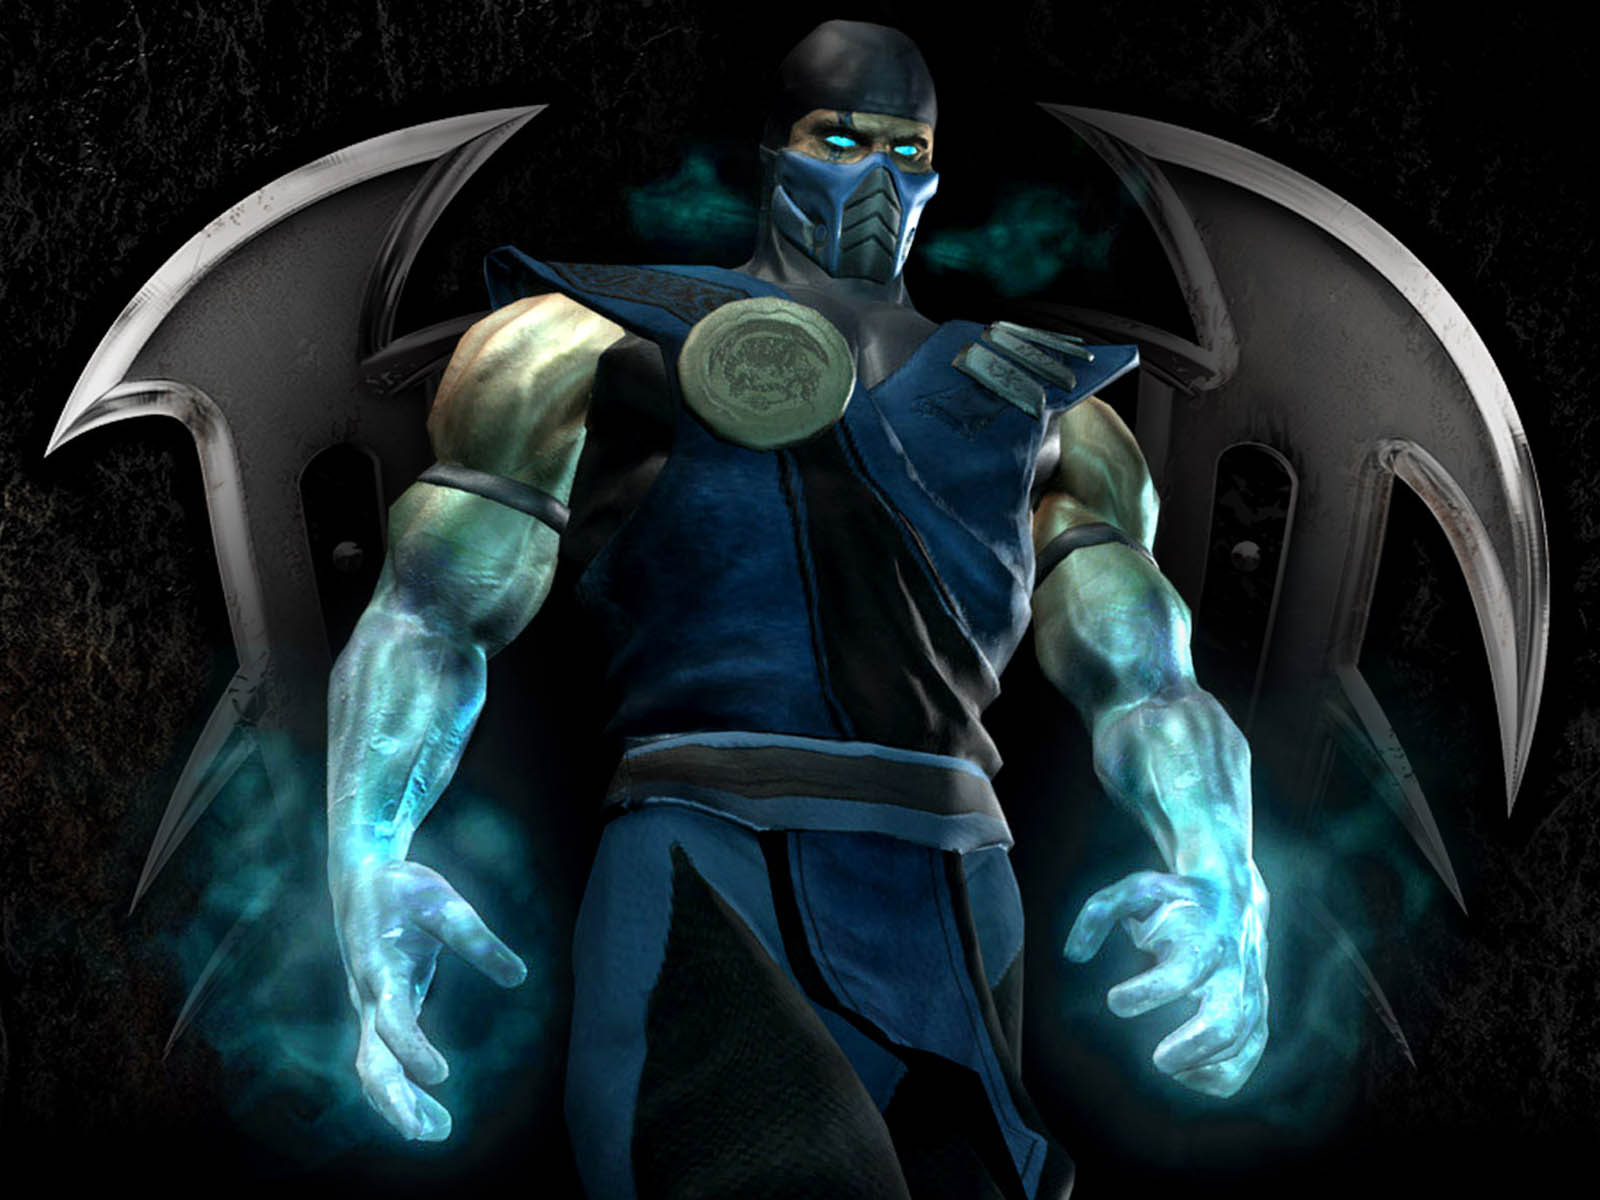 mortal kombat game wallpapers mortal kombat game desktop wallpapers 1600x1200